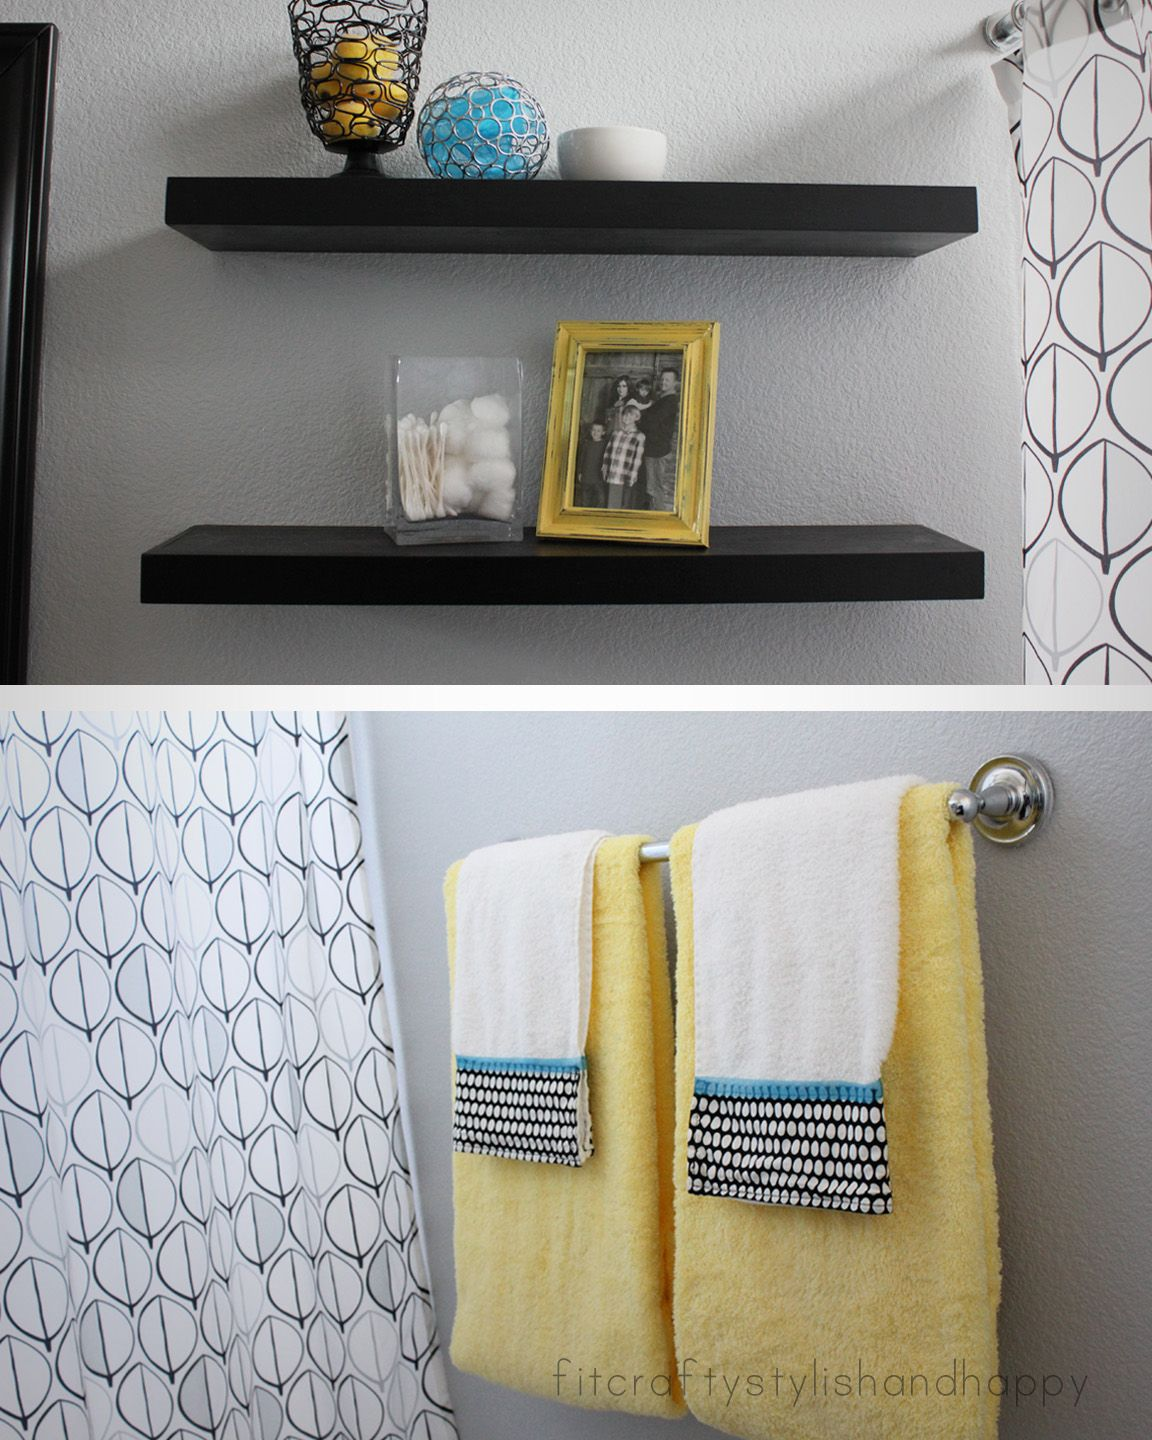 Fit Crafty Stylish And Happy Guest Bathroom Makeover Love The - White decorative towels for small bathroom ideas